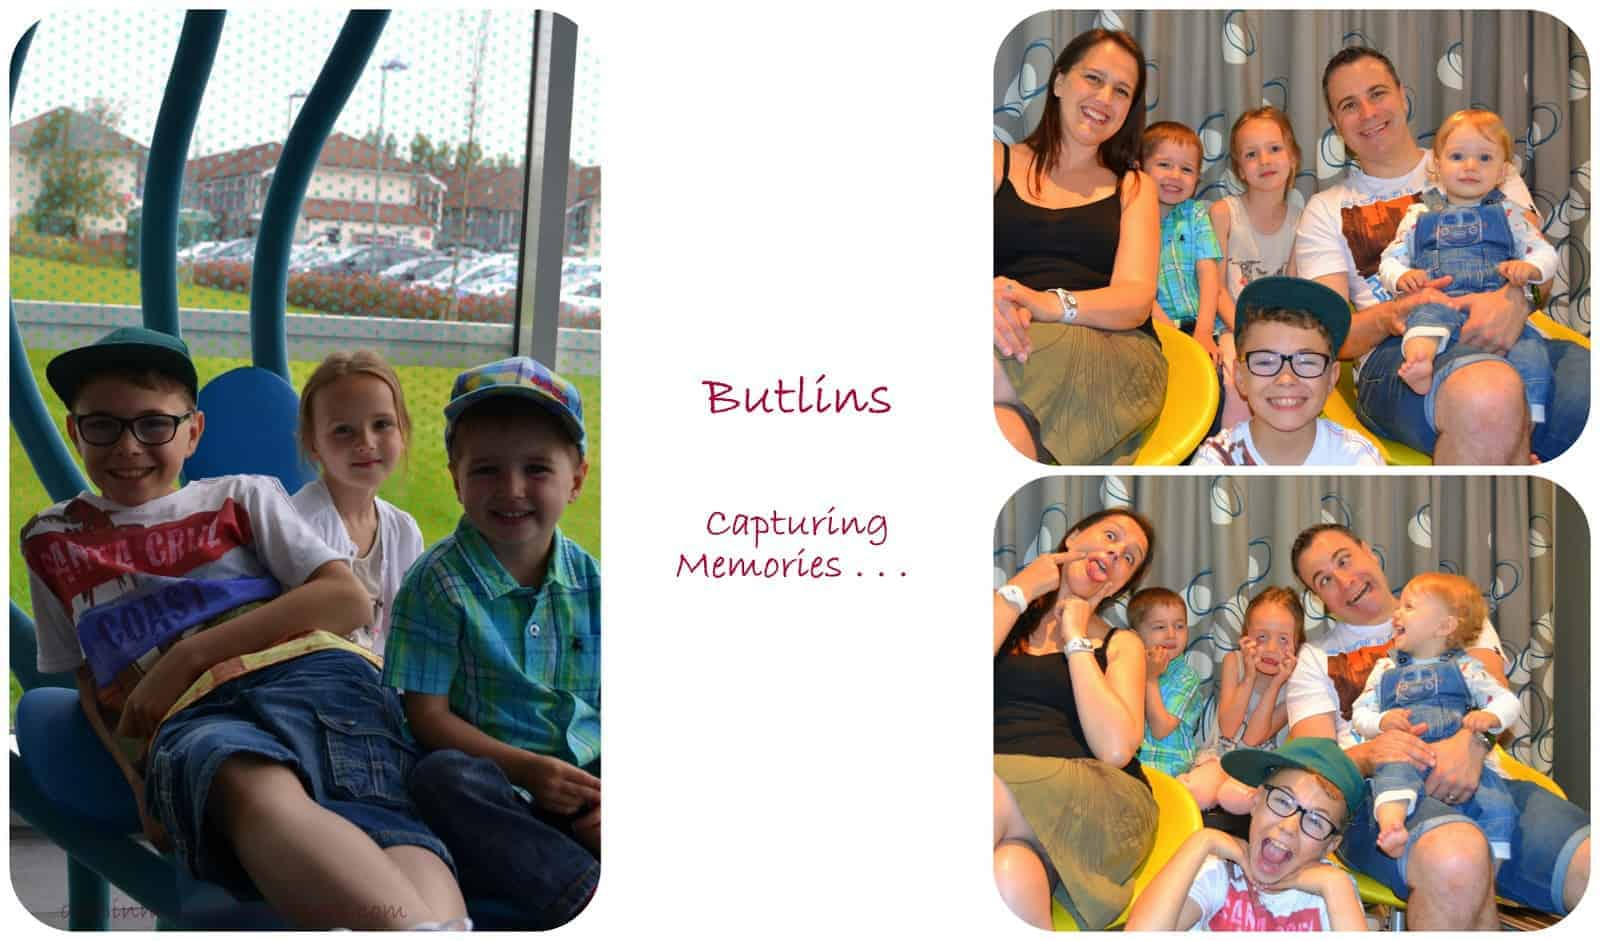 This time last week: Butlins – Day 5 – The Diner and home time . . .